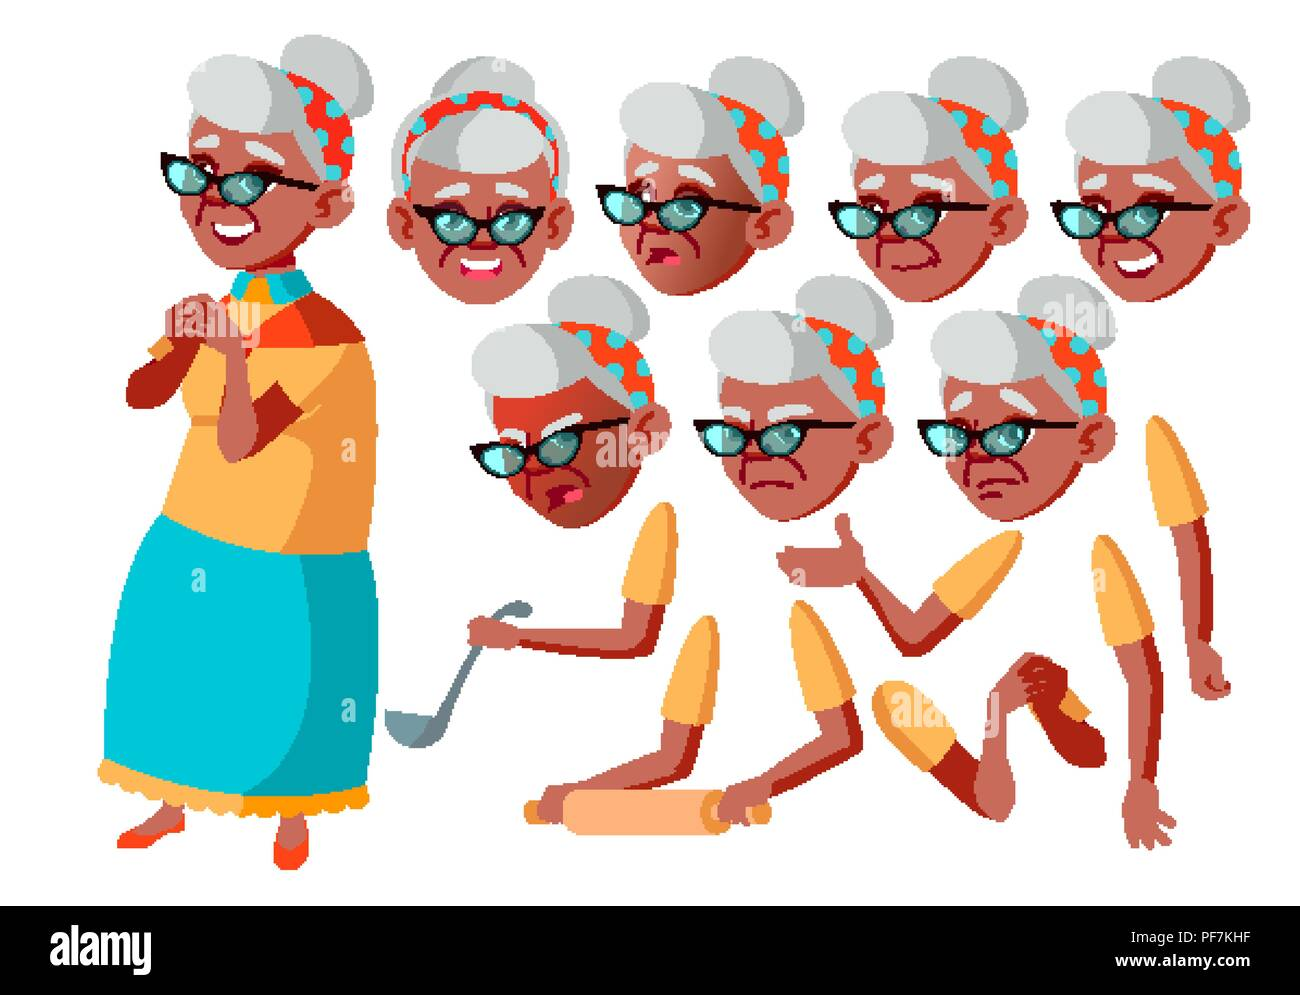 08ca46e4d5ed5 Old Woman Vector. Black. Afro American. Senior Person. Aged, Elderly  People. Face Emotions, Various Gestures. Animation Creation Set. Isolated  Flat Cartoon ...